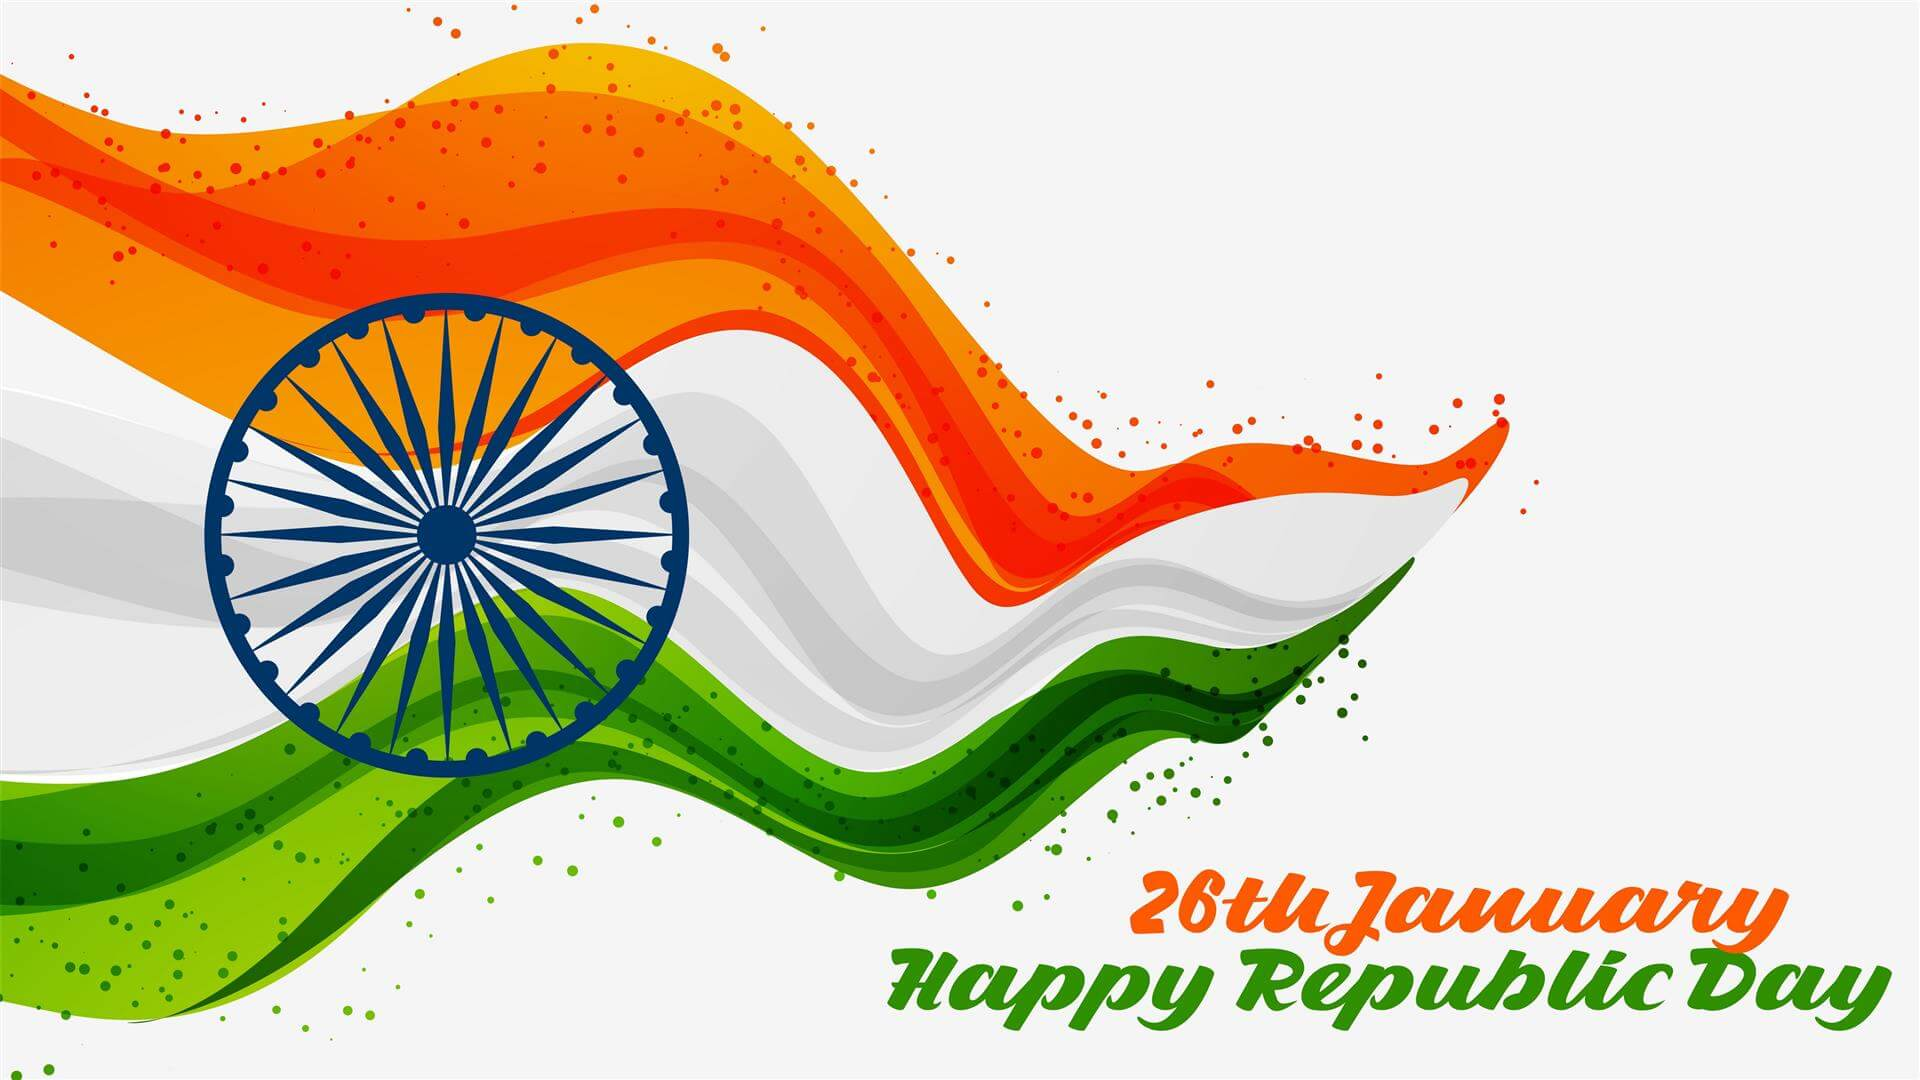 Republic Day Special Images